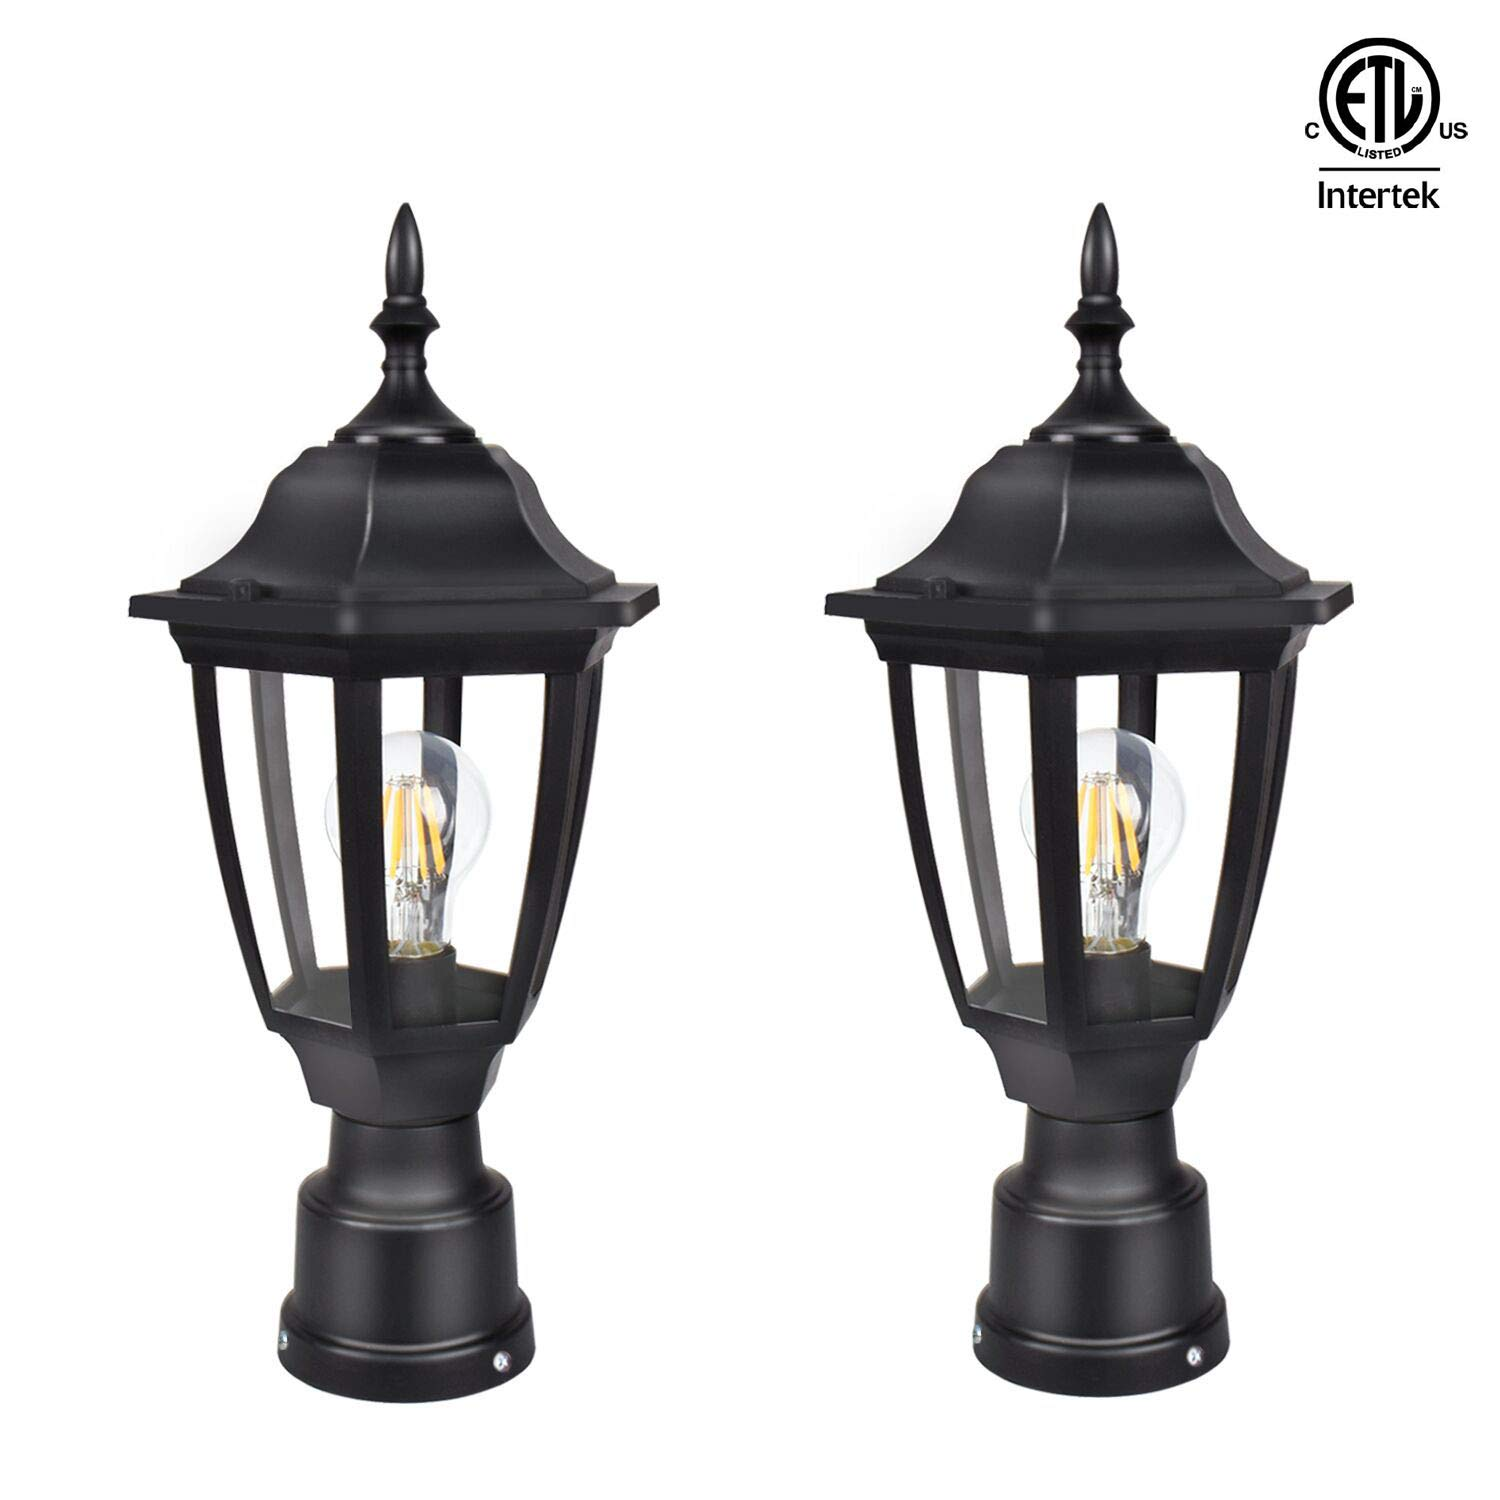 FUDESY 2-Pack LED Outdoor Post Light Fixtures,Plastic Black Post Lanterns with 12W 1200LM Edison Filament Bulb(Corded-Electric), FDS2543B by FUDESY